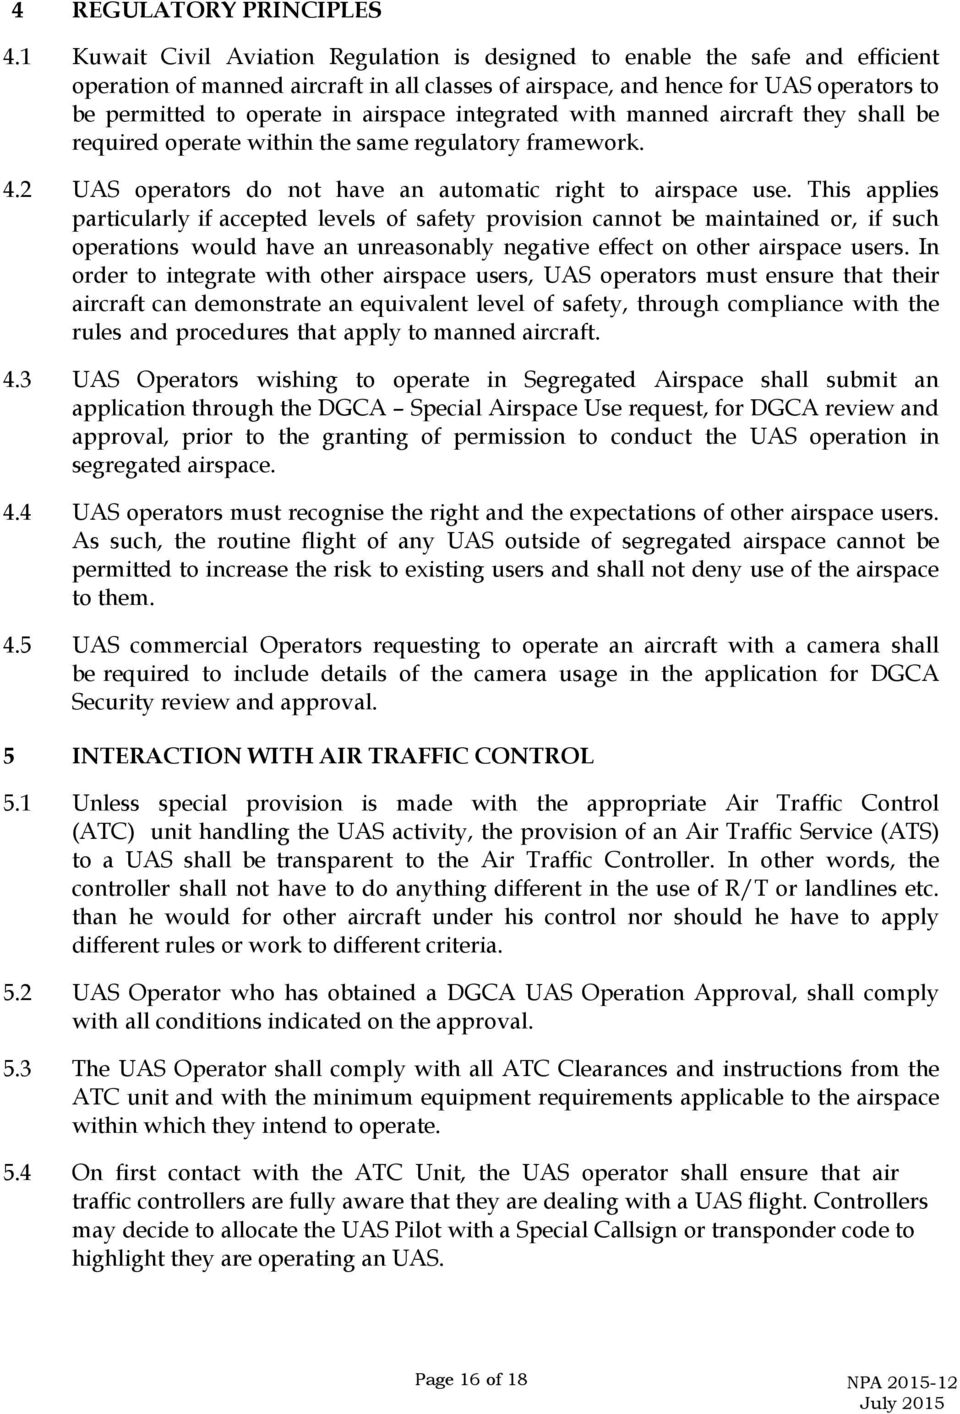 airspace integrated with manned aircraft they shall be required operate within the same regulatory framework. 4.2 UAS operators do not have an automatic right to airspace use.